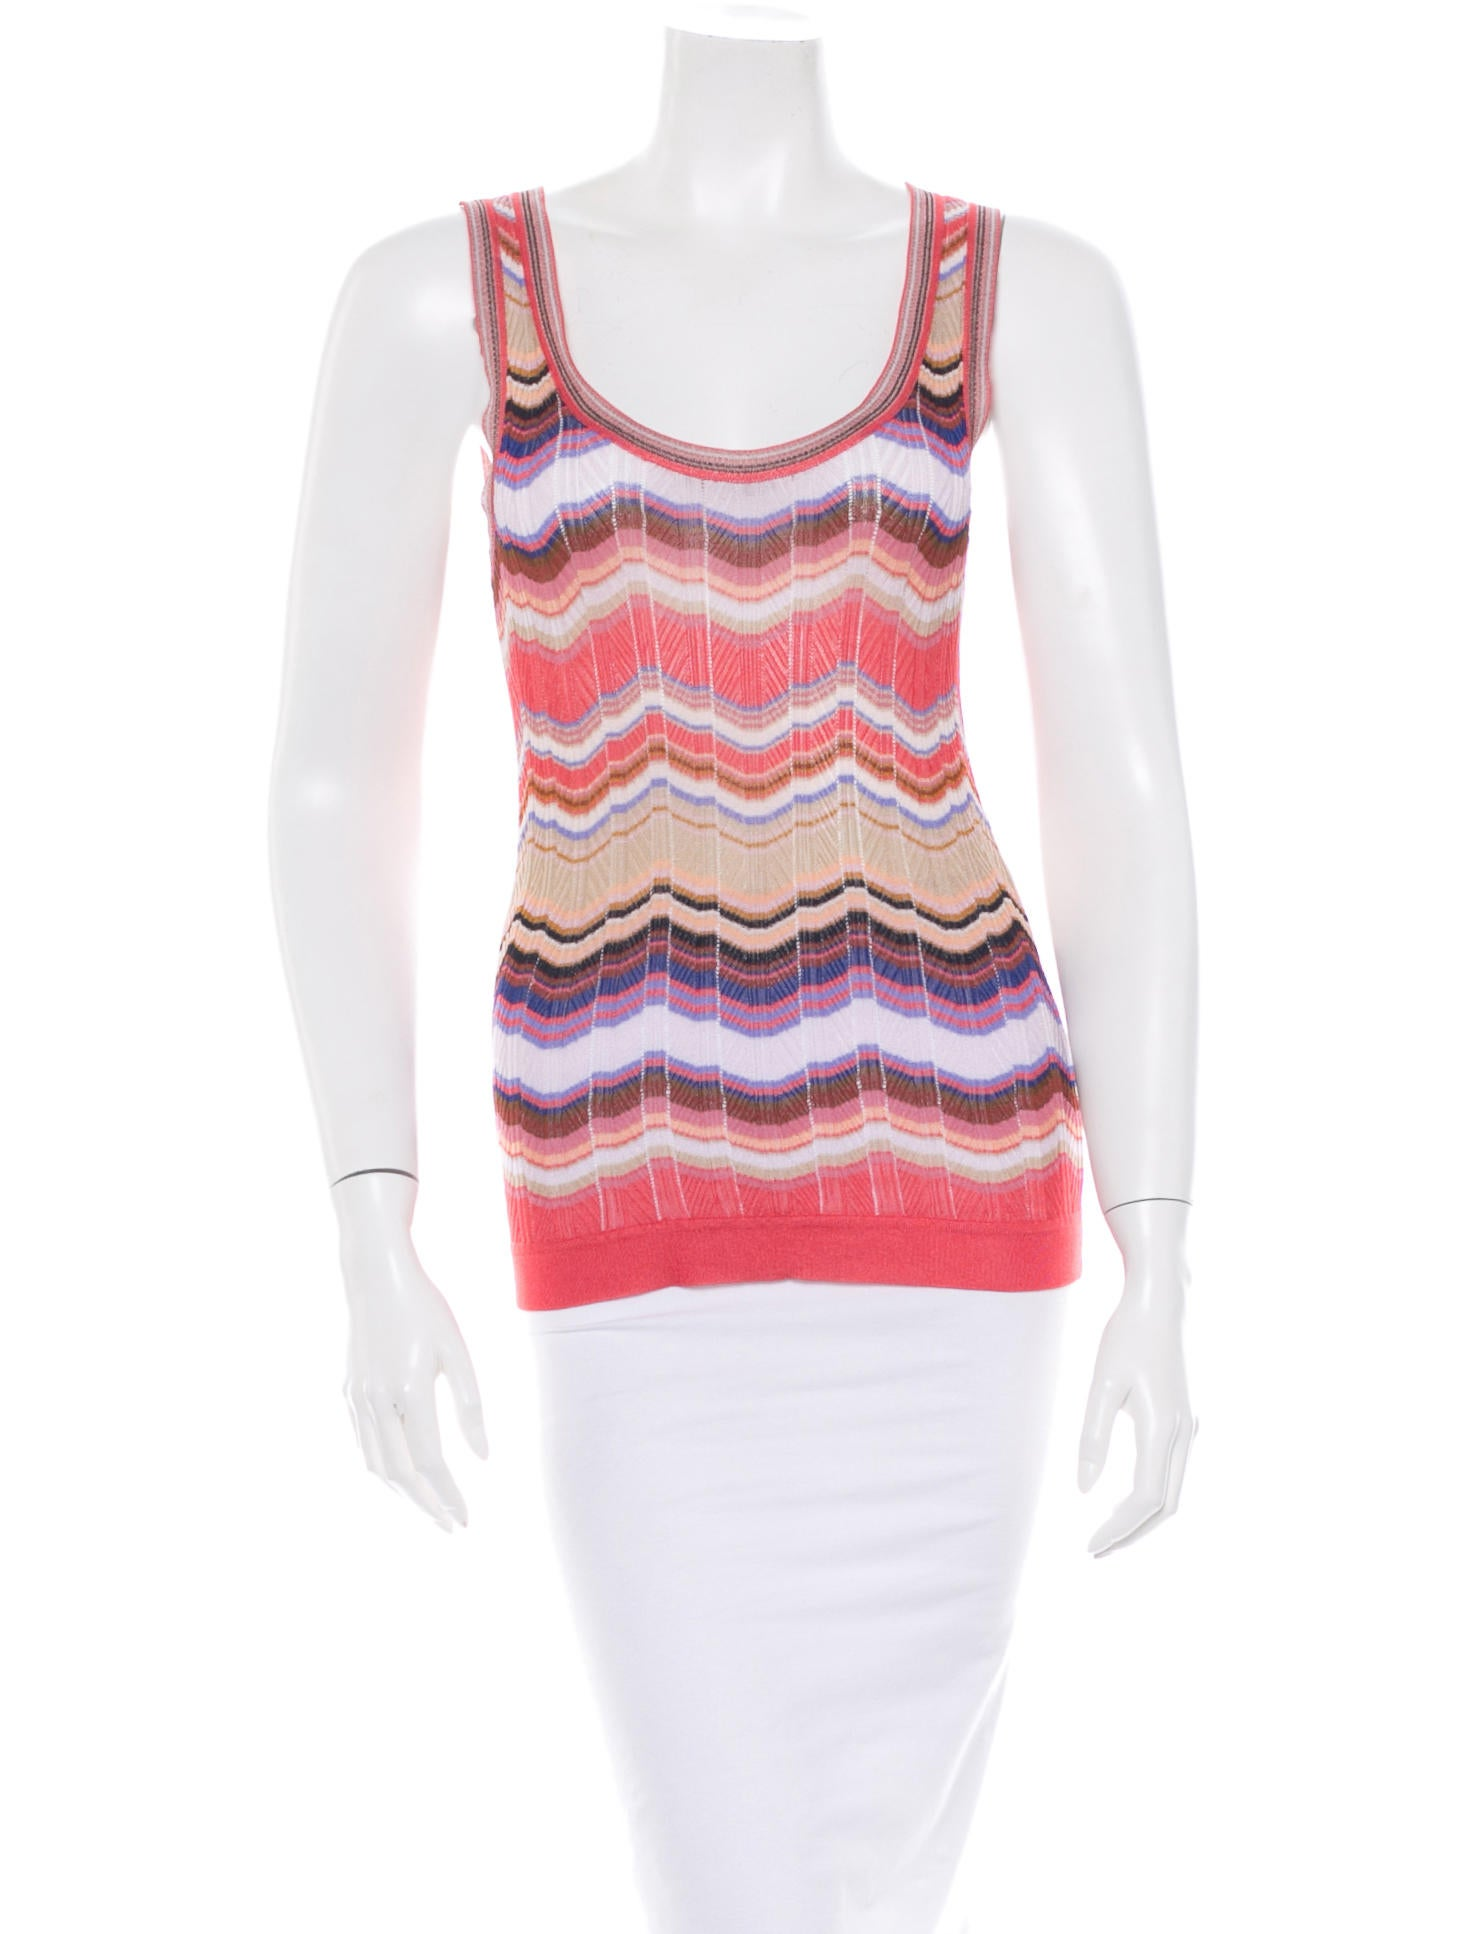 Missoni Knit Tank Top - Tops - MIS24498 The RealReal